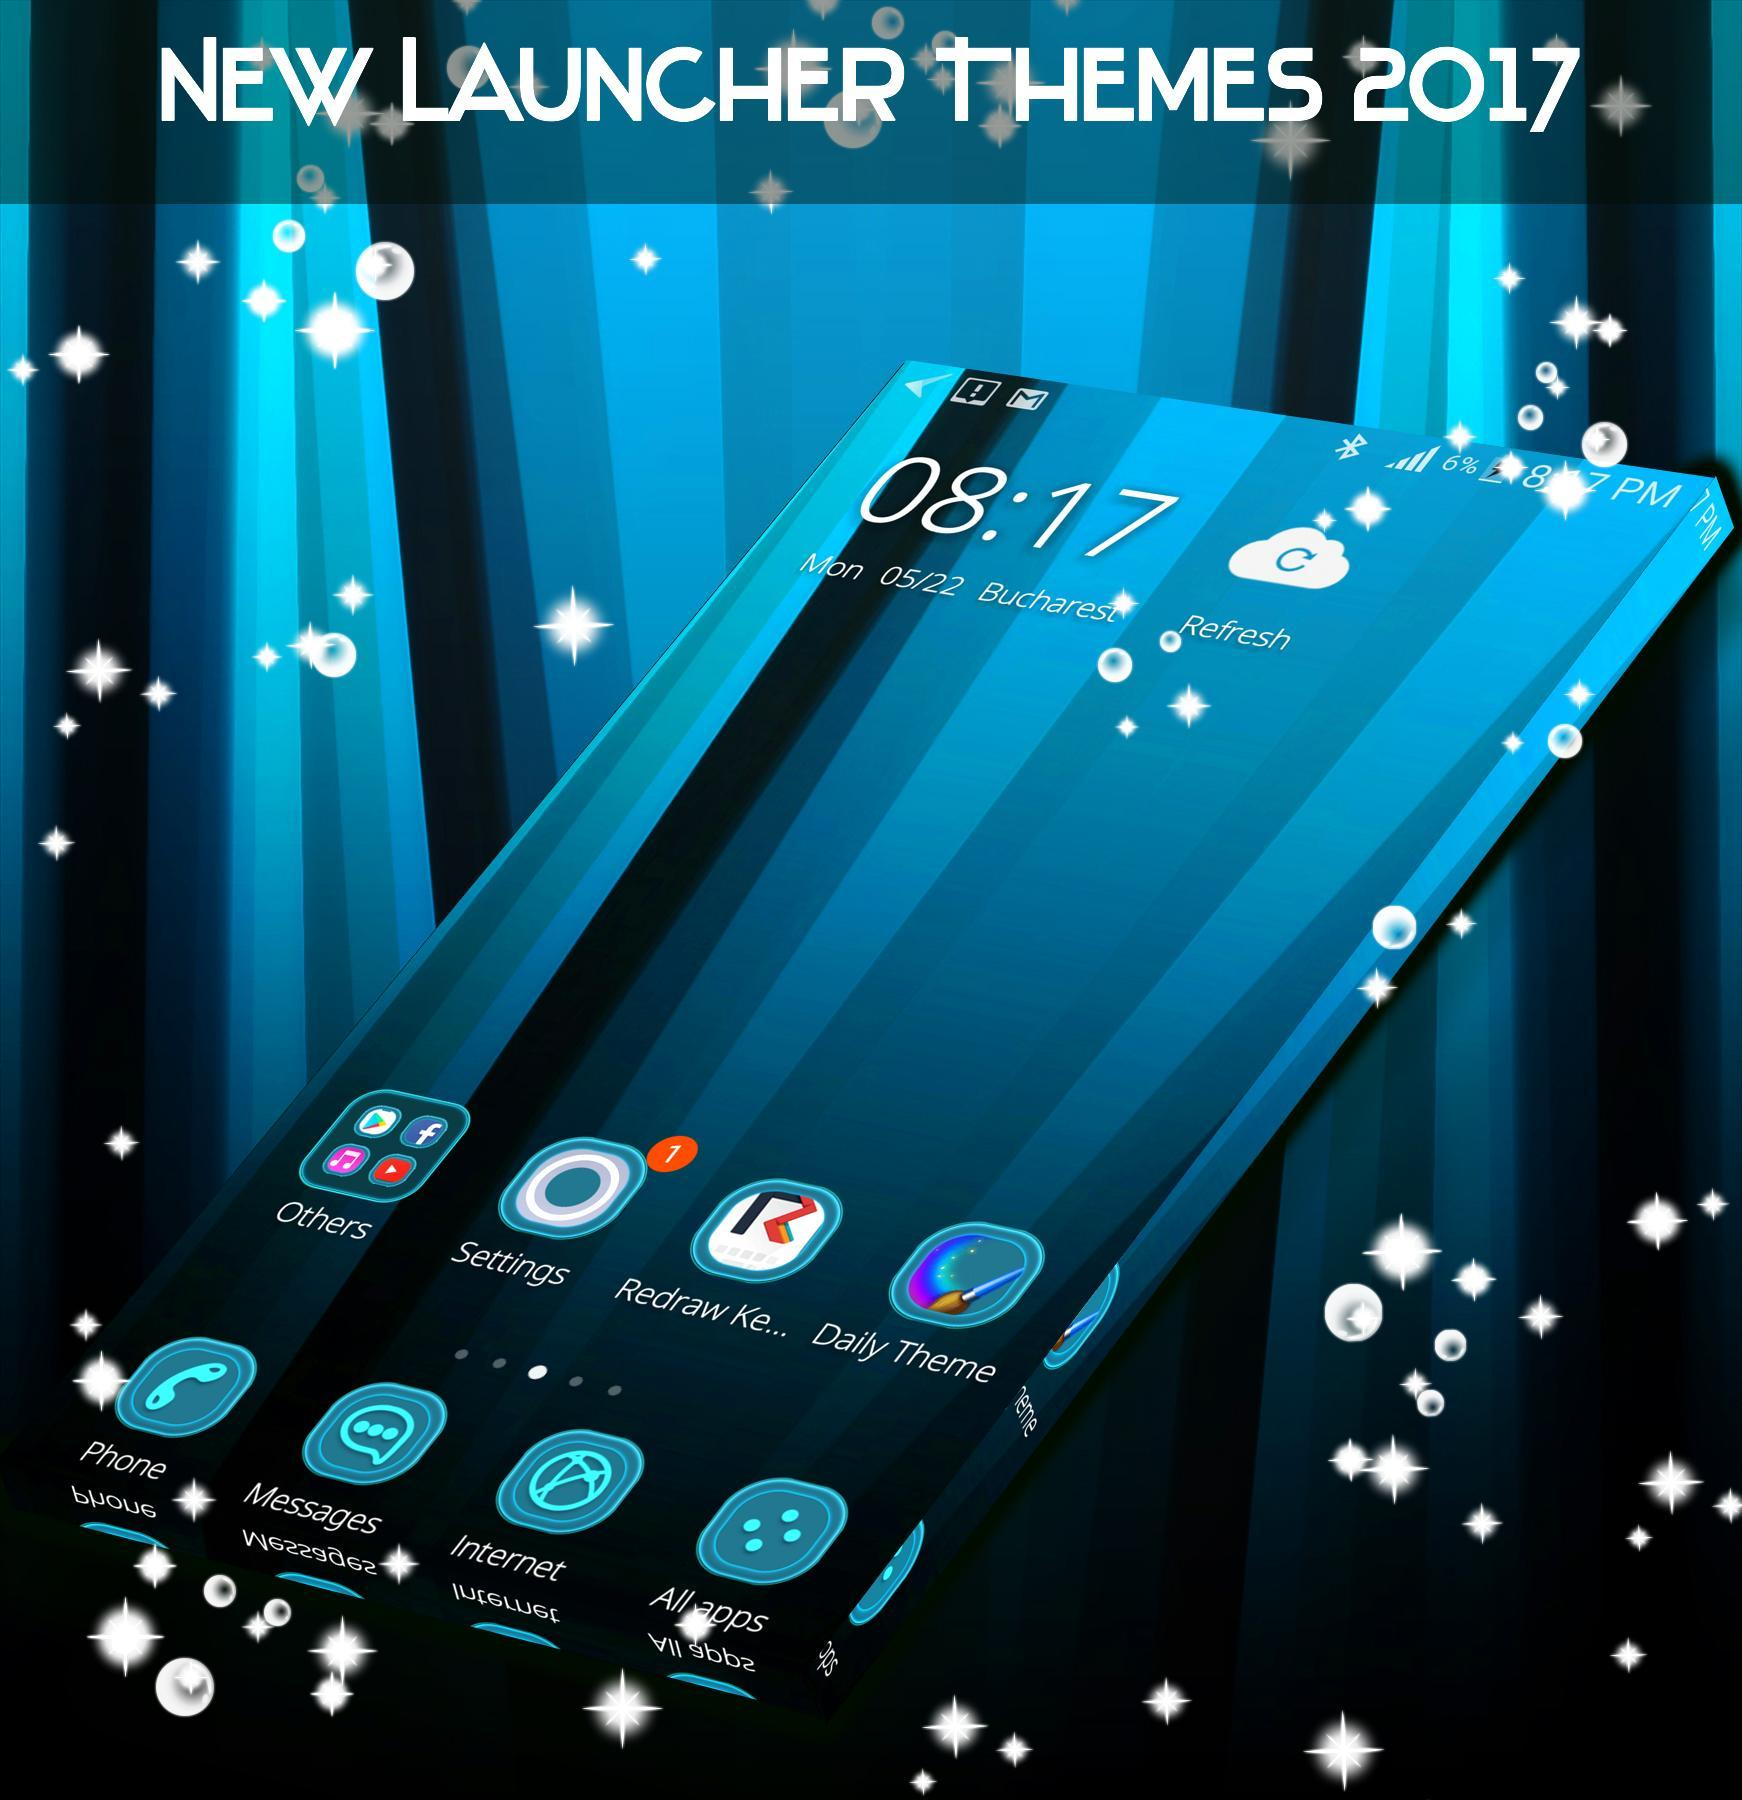 New Launcher Themes 2017 for Android - APK Download